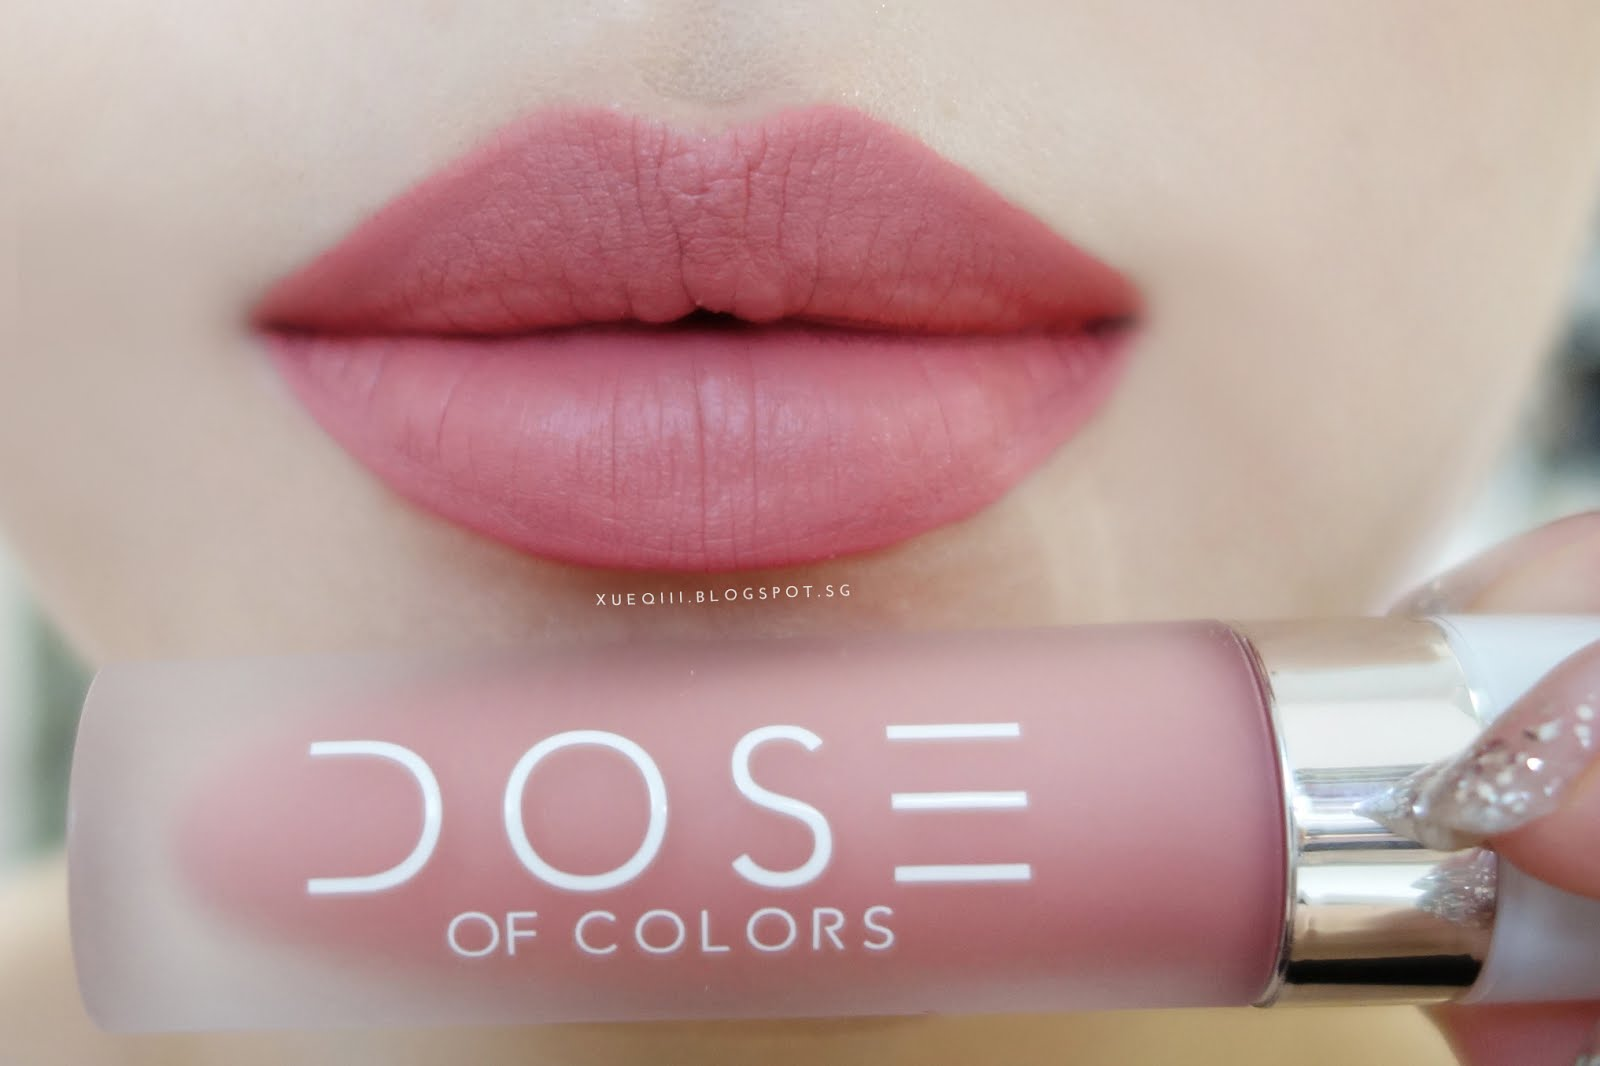 dose of colors liquid matte lipstick review and swatches xueqi 39 s beauty episode. Black Bedroom Furniture Sets. Home Design Ideas